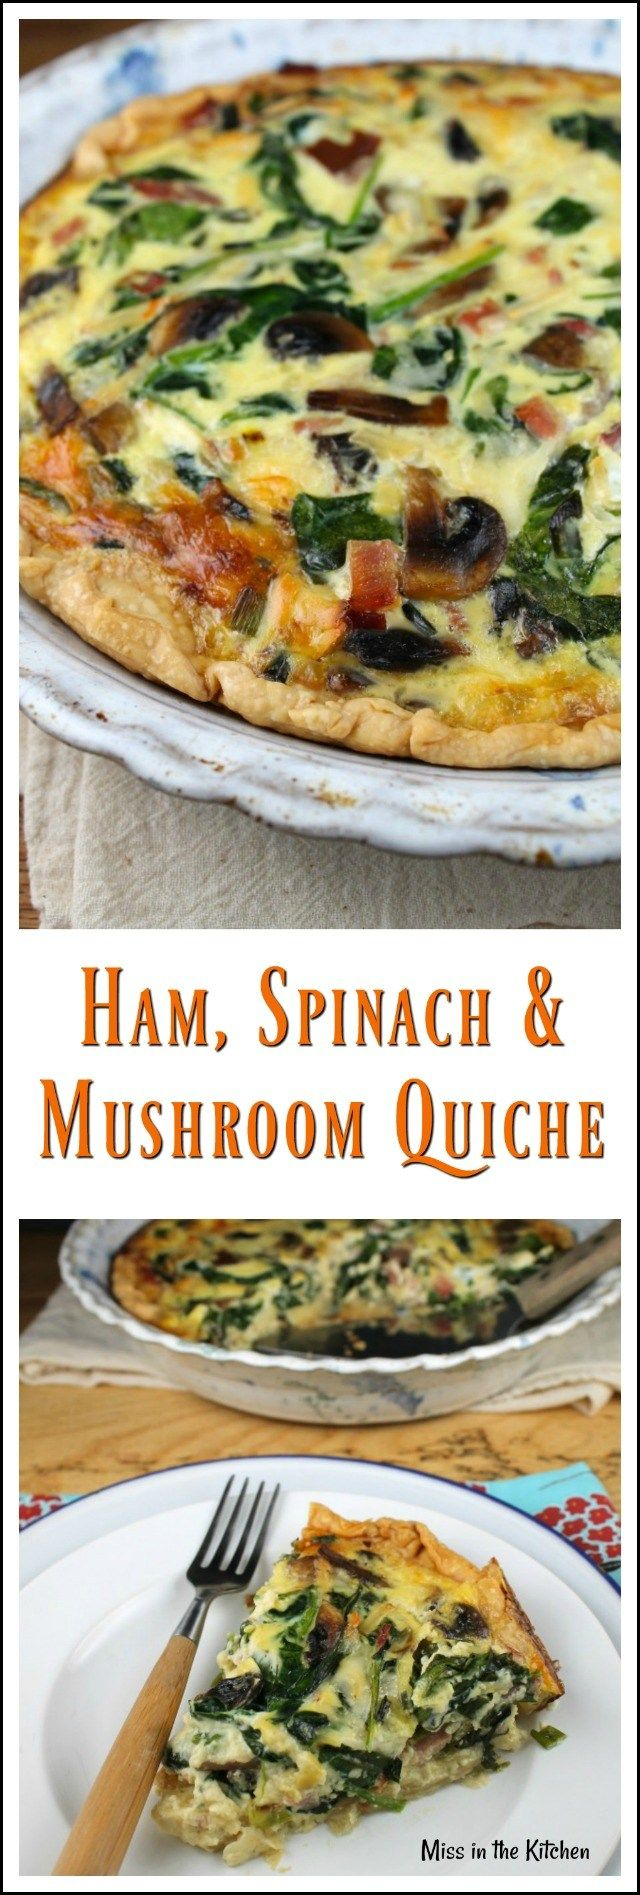 Ham Spinach & Mushroom Quiche Recipe perfect for brunch ~ MissintheKitchen.com #ad #Brunch